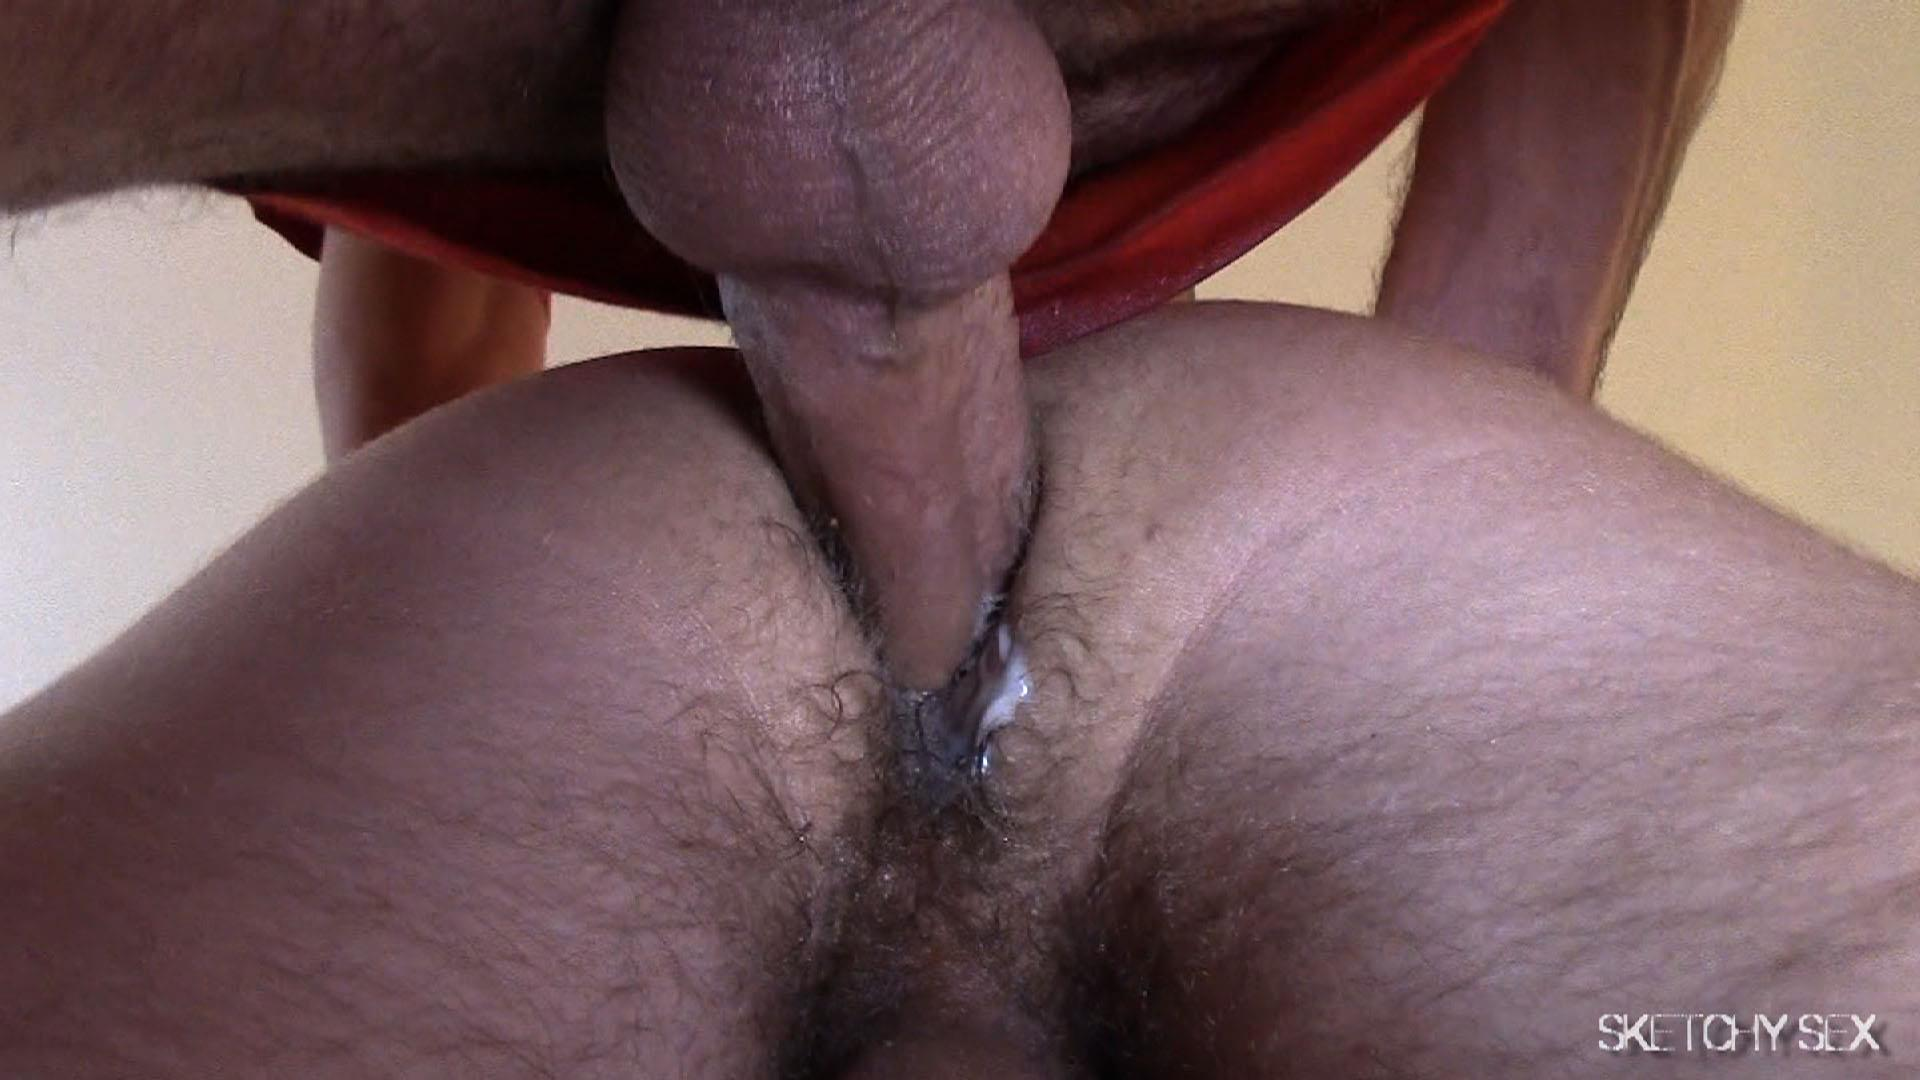 "Sketchy-Sex-Nate-Getting-Fucked-Bareback-By-A-10-Inch-Craigslist-Cock-Amateur-Gay-Porn-11 Taking A 10"" Craigslist Cock Bareback While The Roommate Watches"